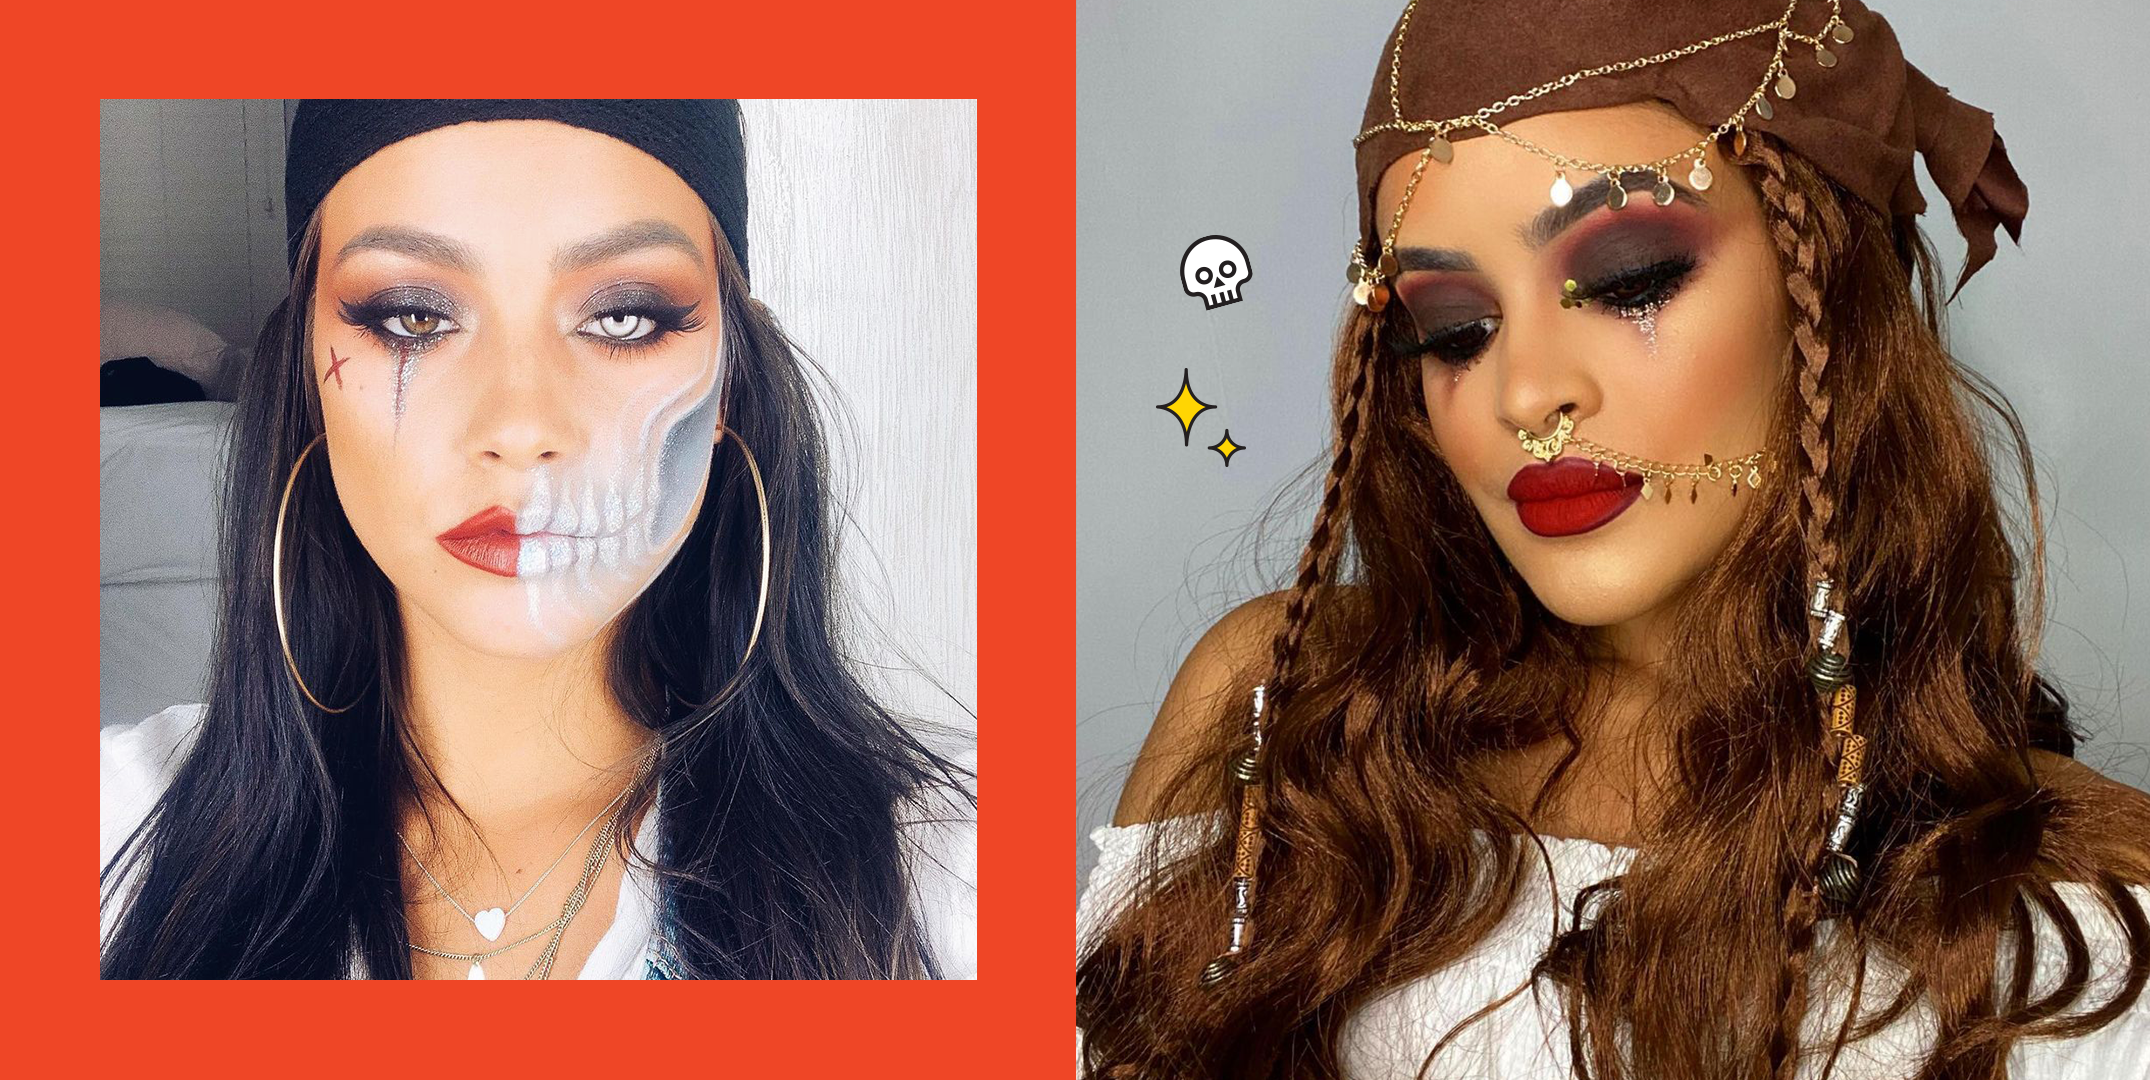 30 Pirate Makeup Looks That Are Legit Perfect for Halloween